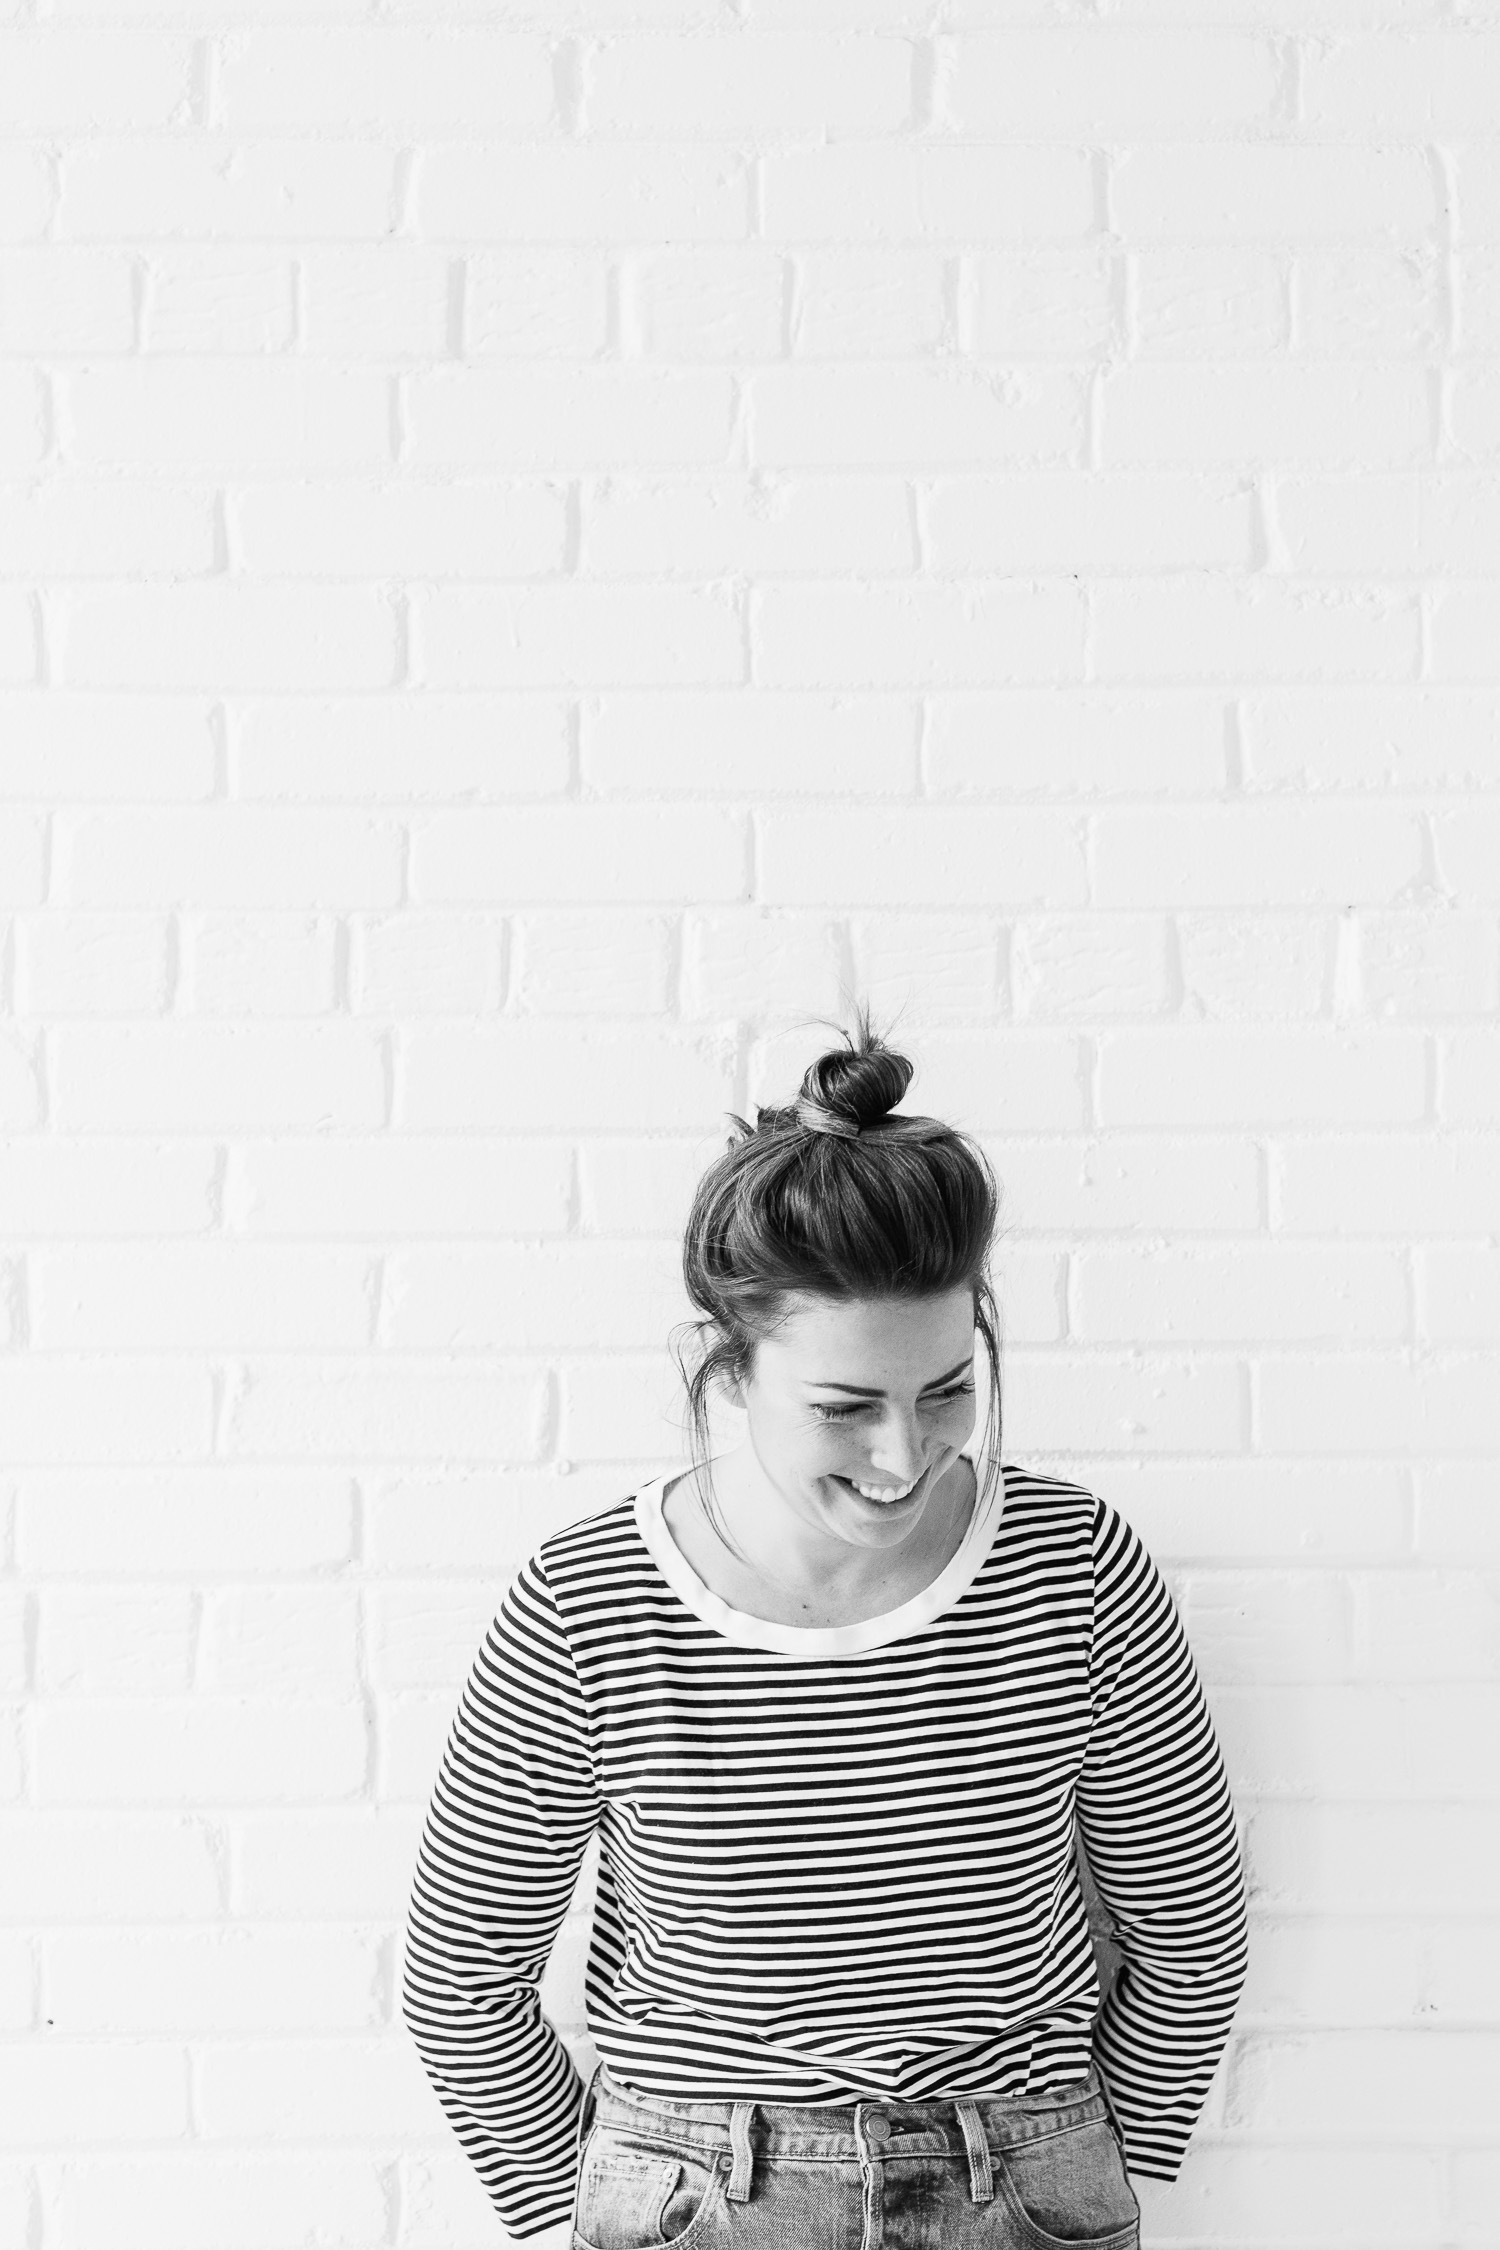 Michelle is a Toronto based culinary producer, food stylist and recipe developer -